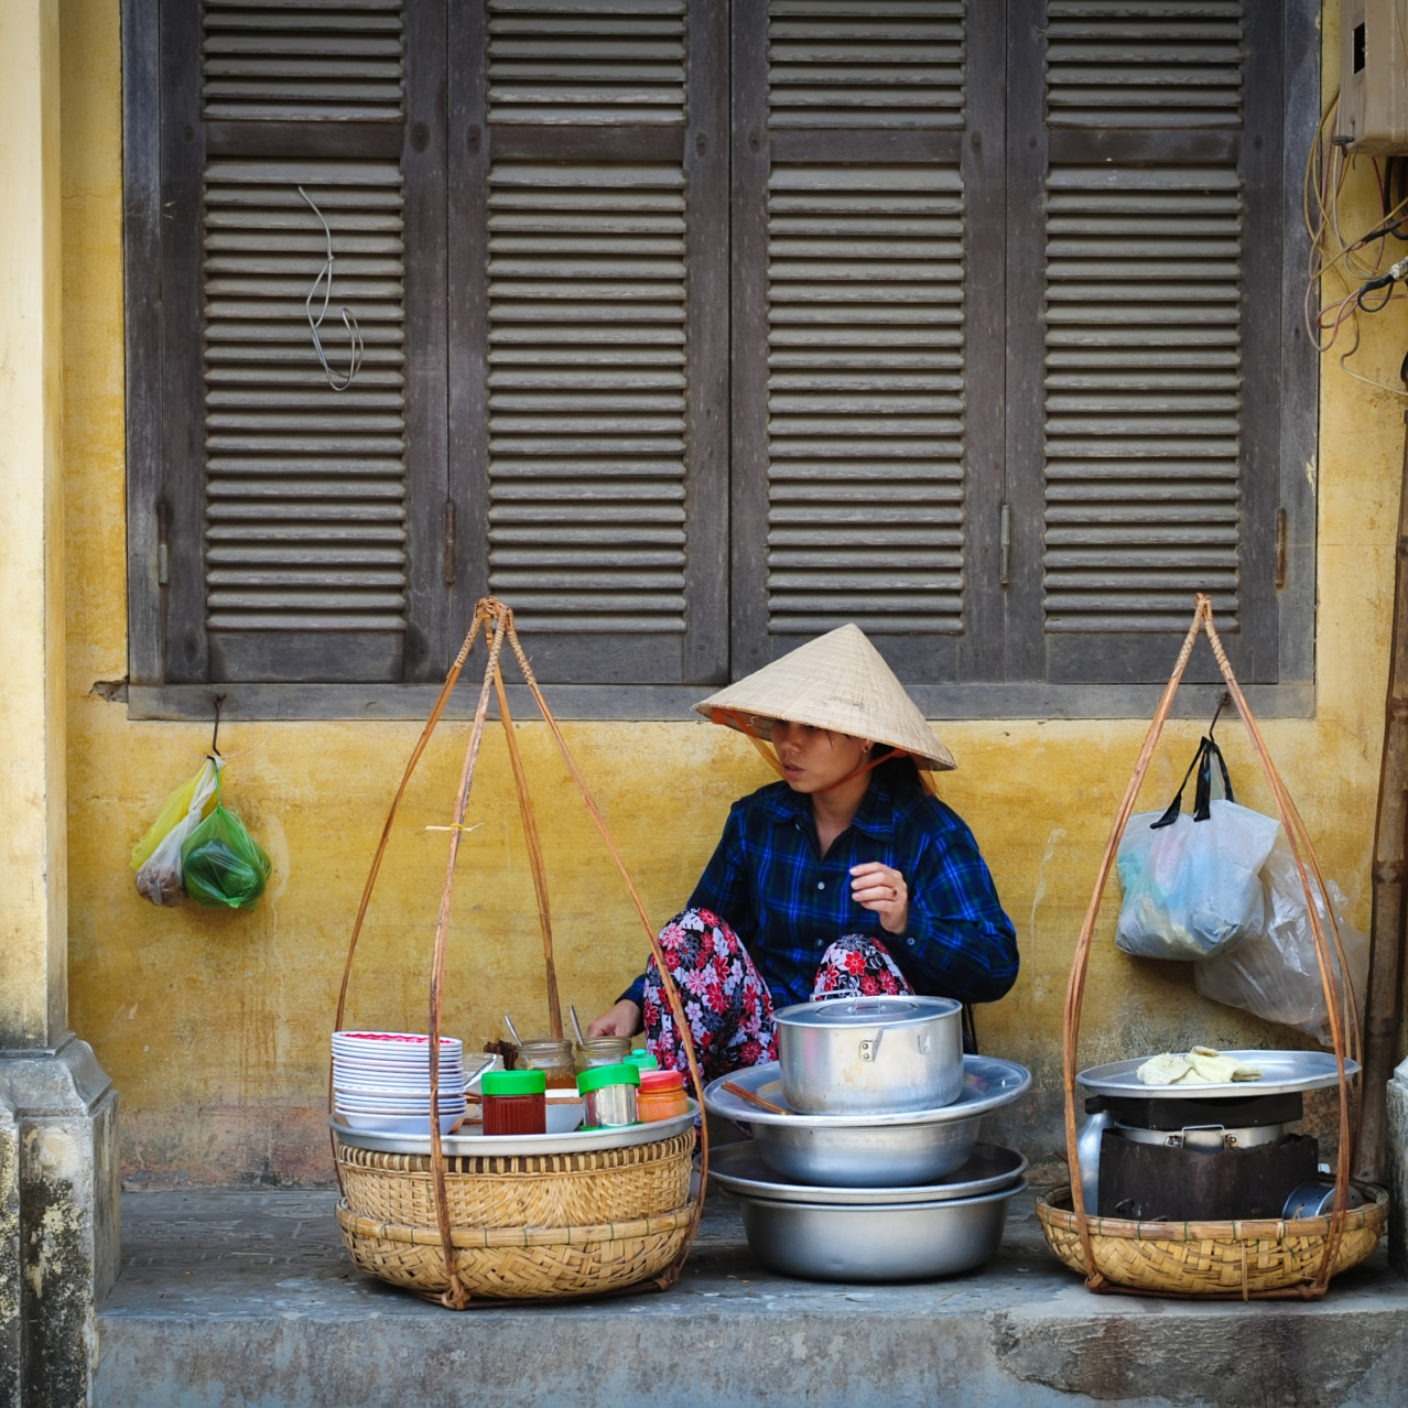 Hue Travel and Tours - Local Life